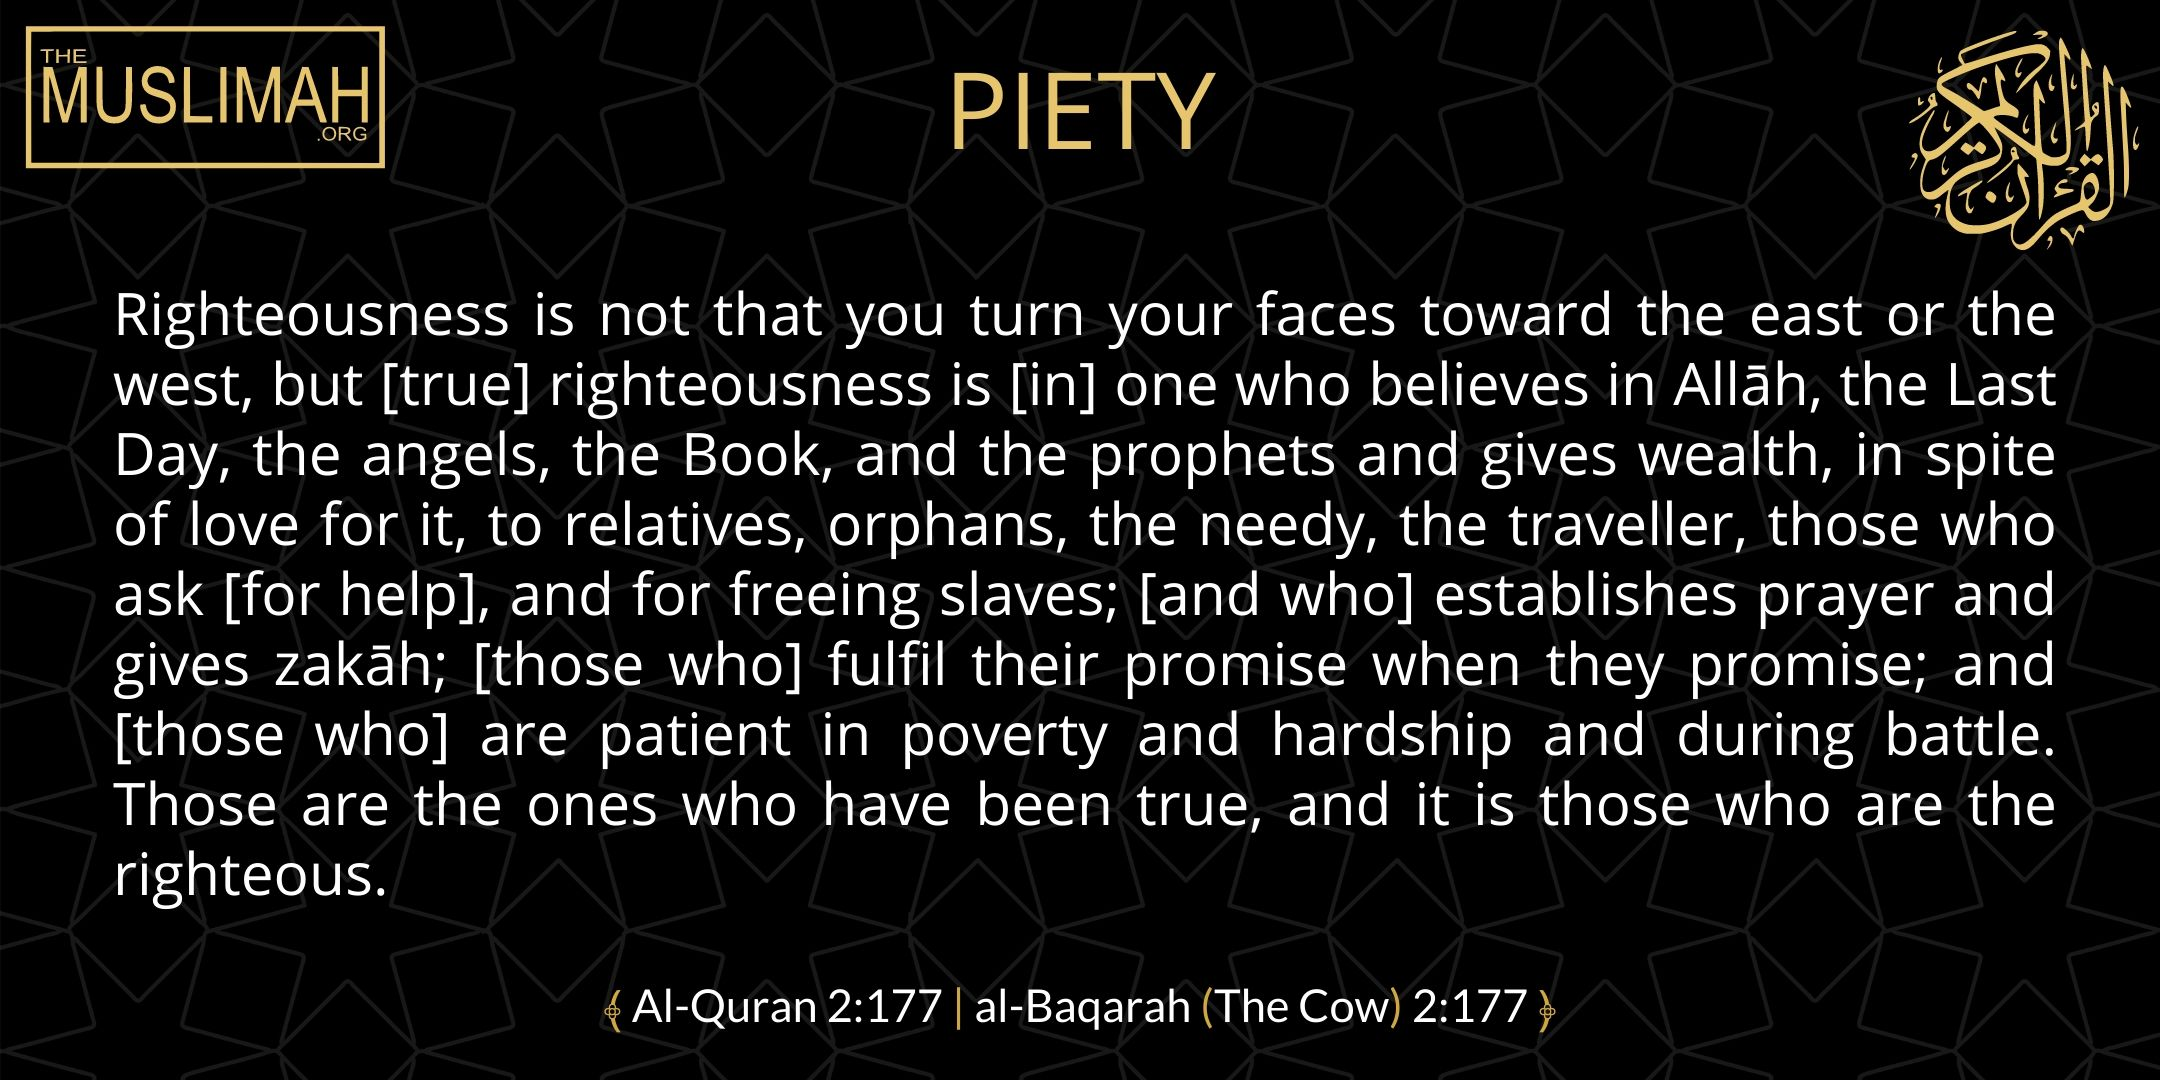 PIETY    Righteousness is not that you turn your faces toward the east or the west, but [true] righteousness is [in] one who believes in Allāh, the Last Day, the angels, the Book, and the prophets and gives wealth, in spite of love for it, to relatives, orphans, the needy, the traveller, those who ask [for help], and for freeing slaves; [and who] establishes prayer and gives zakāh; [those who] fulfil their promise when they promise; and [those who] are patient in poverty and hardship and during battle. Those are the ones who have been true, and it is those who are the righteous.  ﴾ Al-Quran 2:177   al-Baqarah (The Cow) 2:177 ﴿